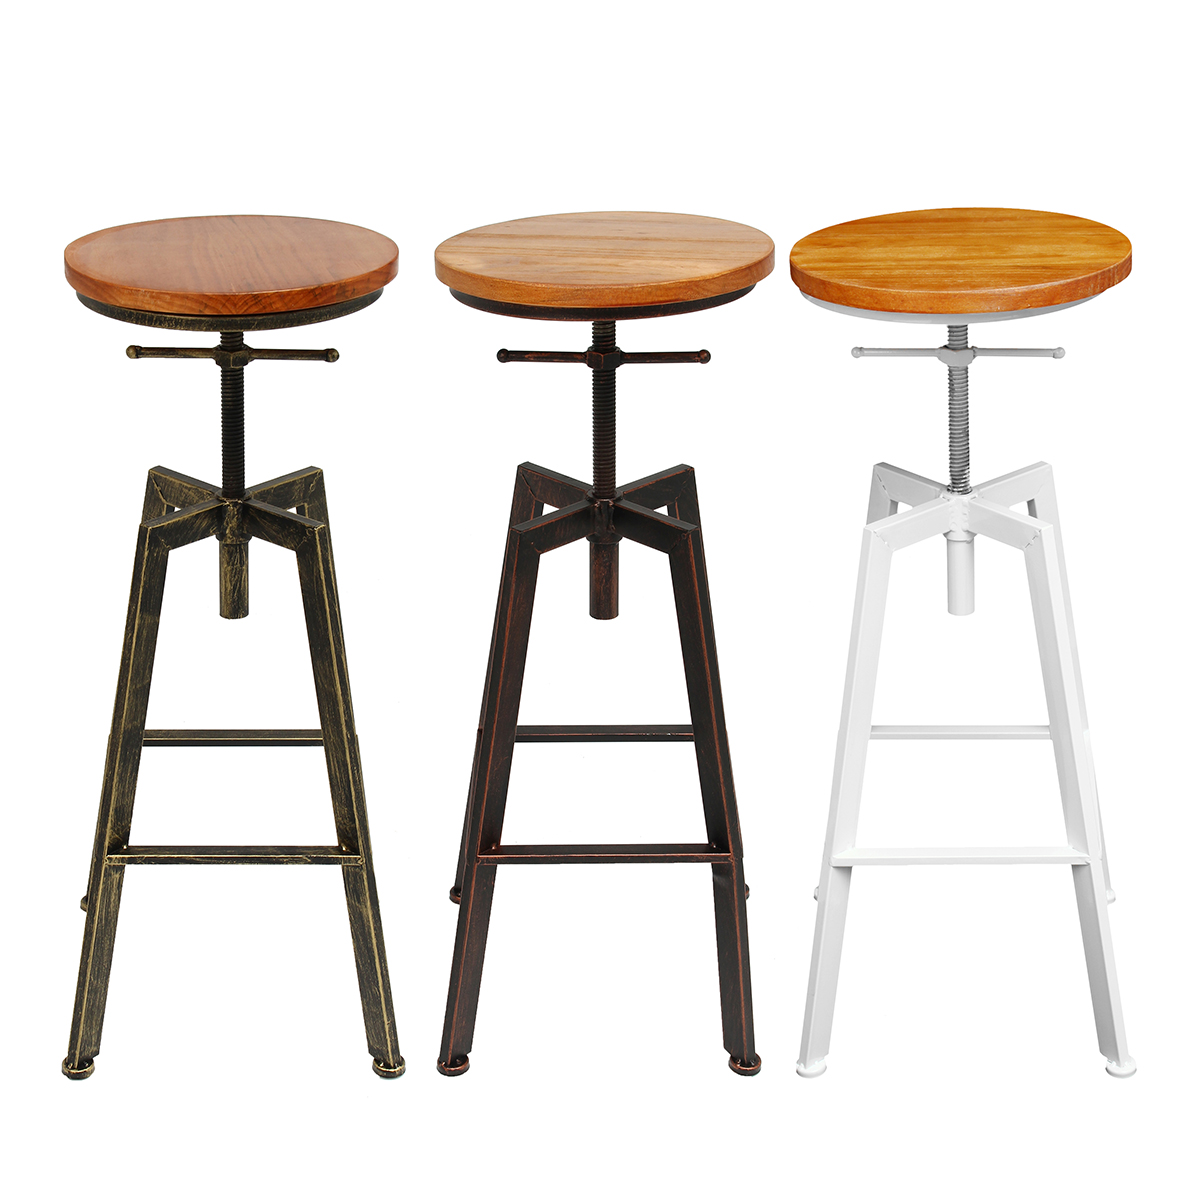 Adjustable Bar Chairs Wood Iron Counter Stool Retro Industrial Rotating Lift Bar Decorations